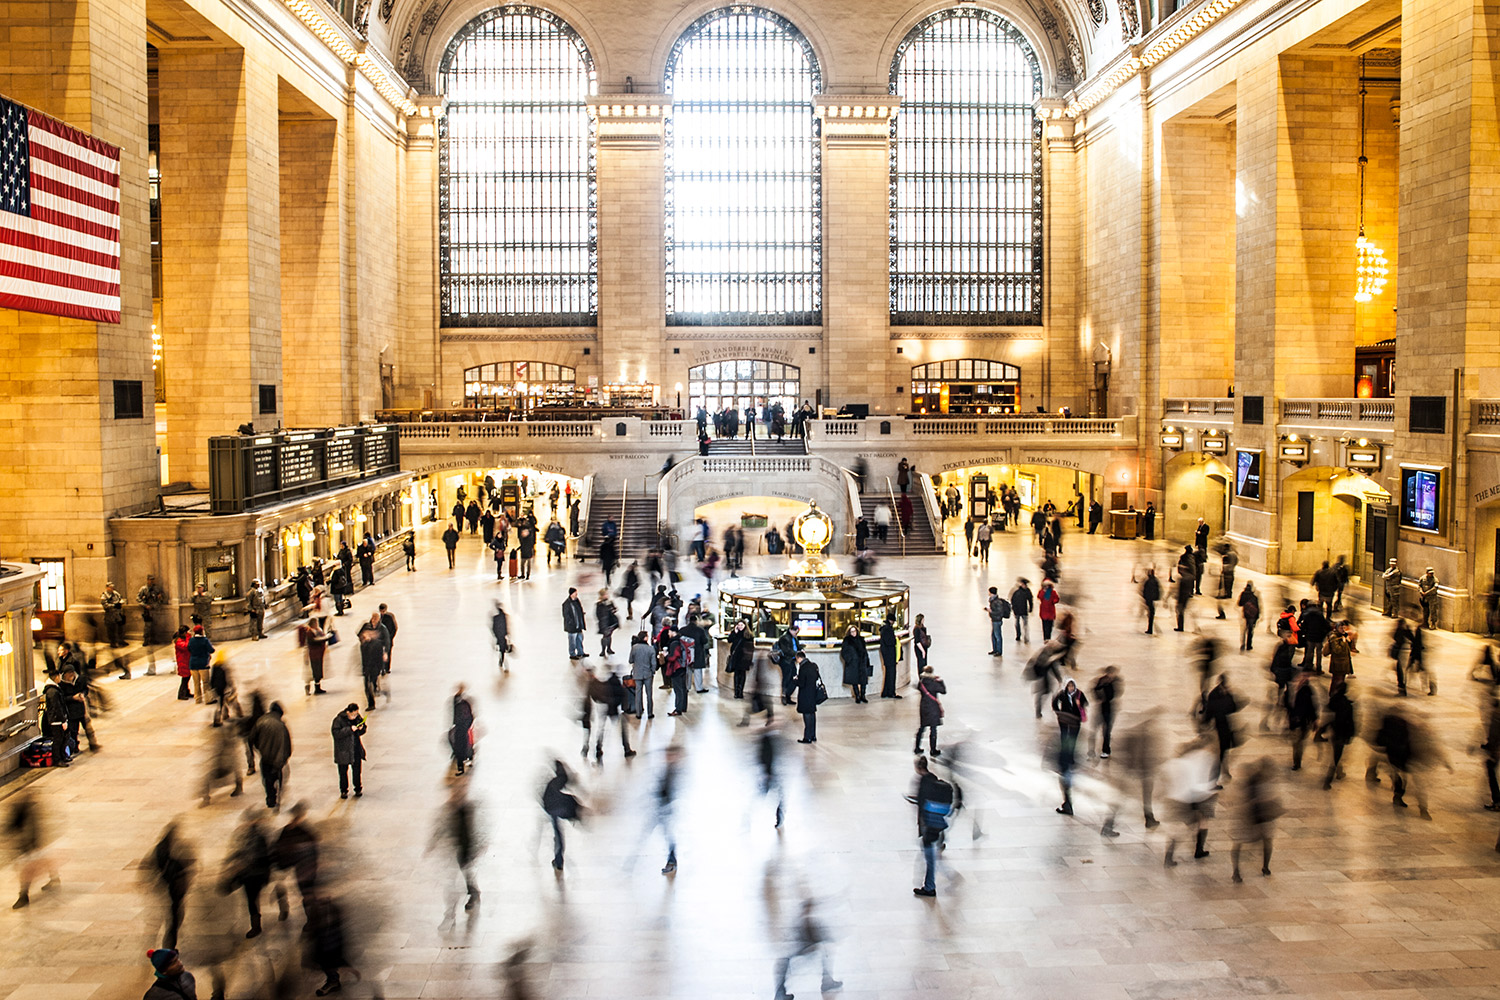 Busy commuters at Grand Central Station